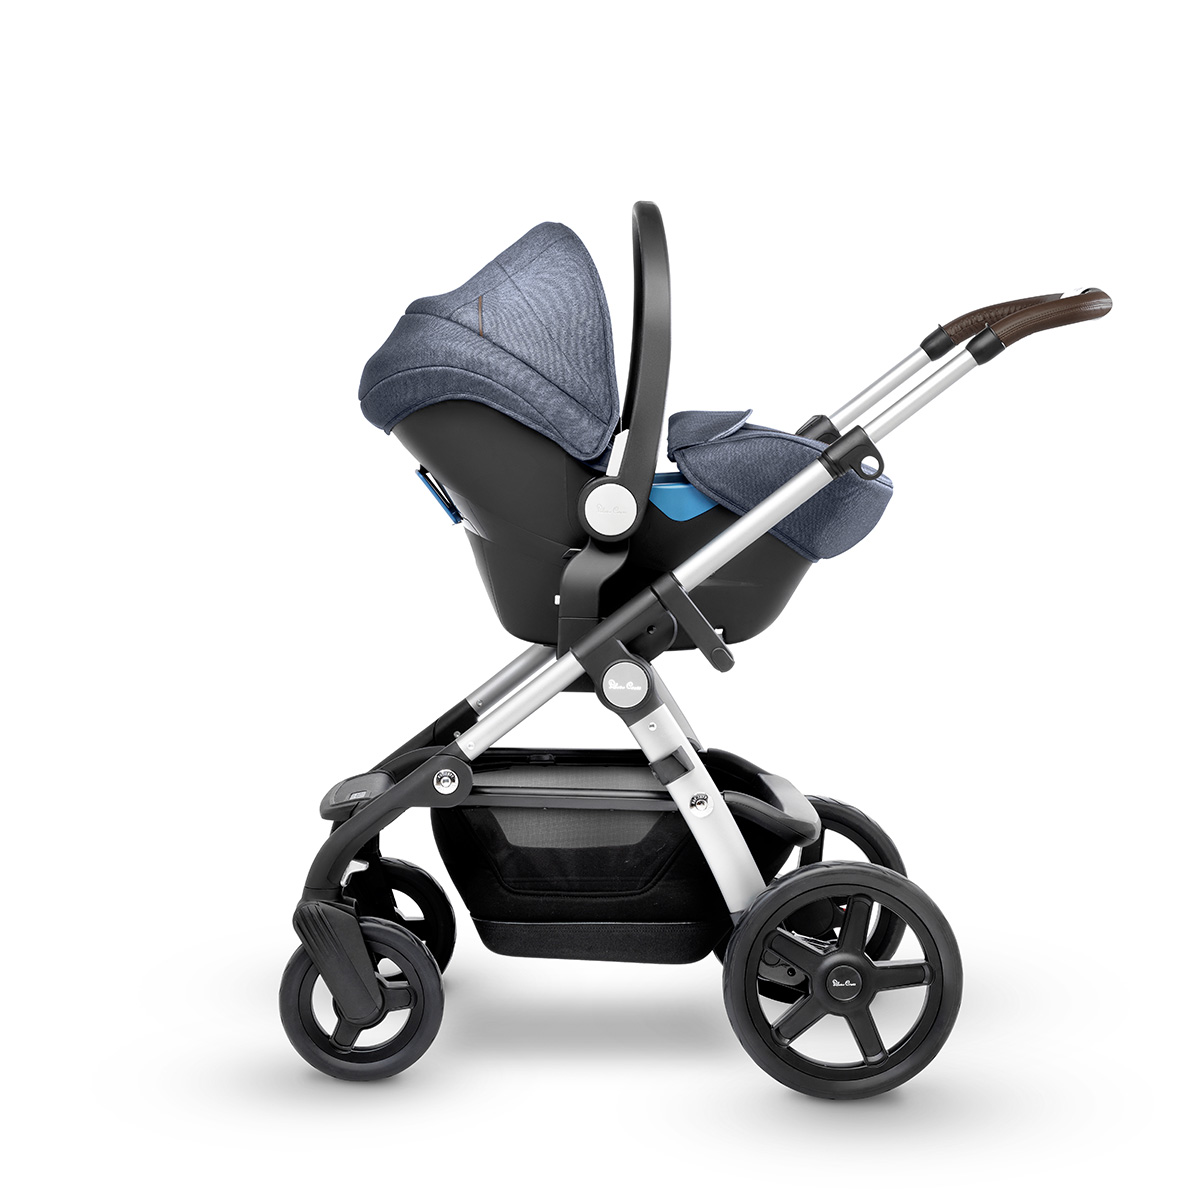 Positioning Preemies Hug Joey together with Silver Cross Sleepover Elegance also Bugaboo Fox Vs Bugaboo Cameleon Stroller  parison additionally Venicci Pure Leatherette Special Edition Shadow Pushchair Carrycot Car Seat as well . on peg perego car seat